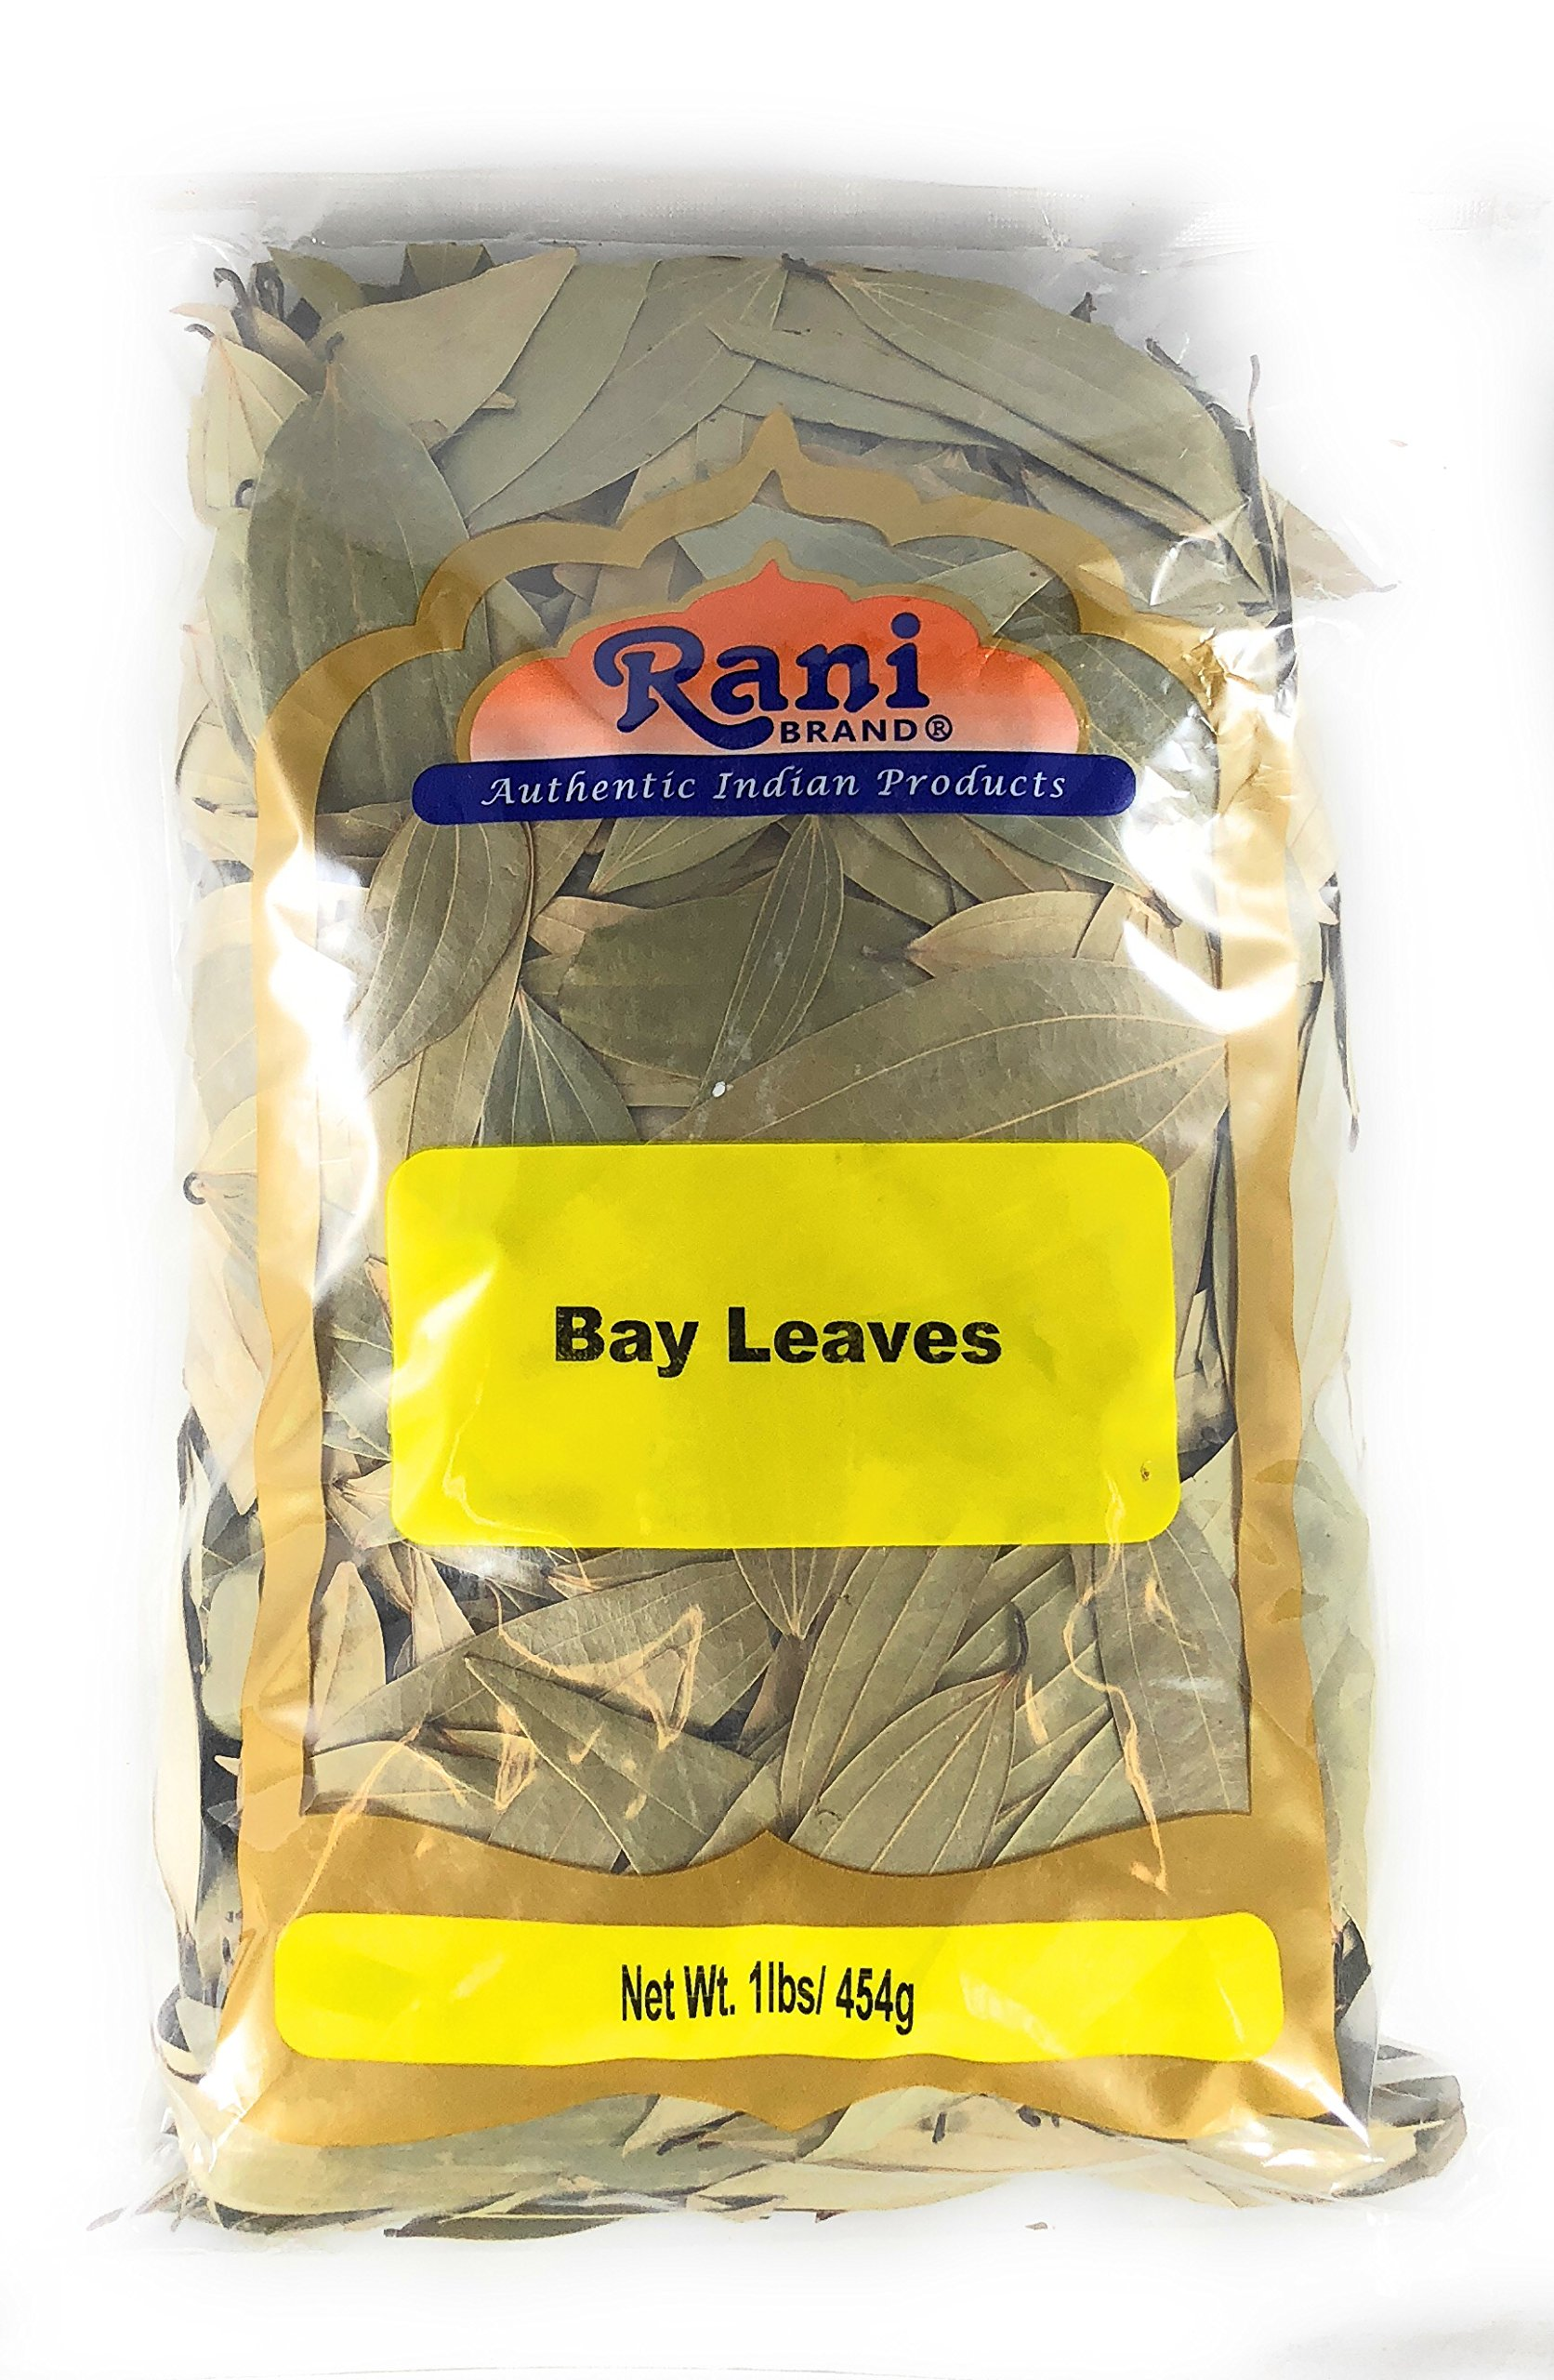 Rani Bay Whole Leaf (Leaves) Spice Hand Selected Extra Large 16oz (454g) 1lb Bulk Pack All Natural ~ Gluten Free Ingredients | NON-GMO | Vegan | Indian Origin